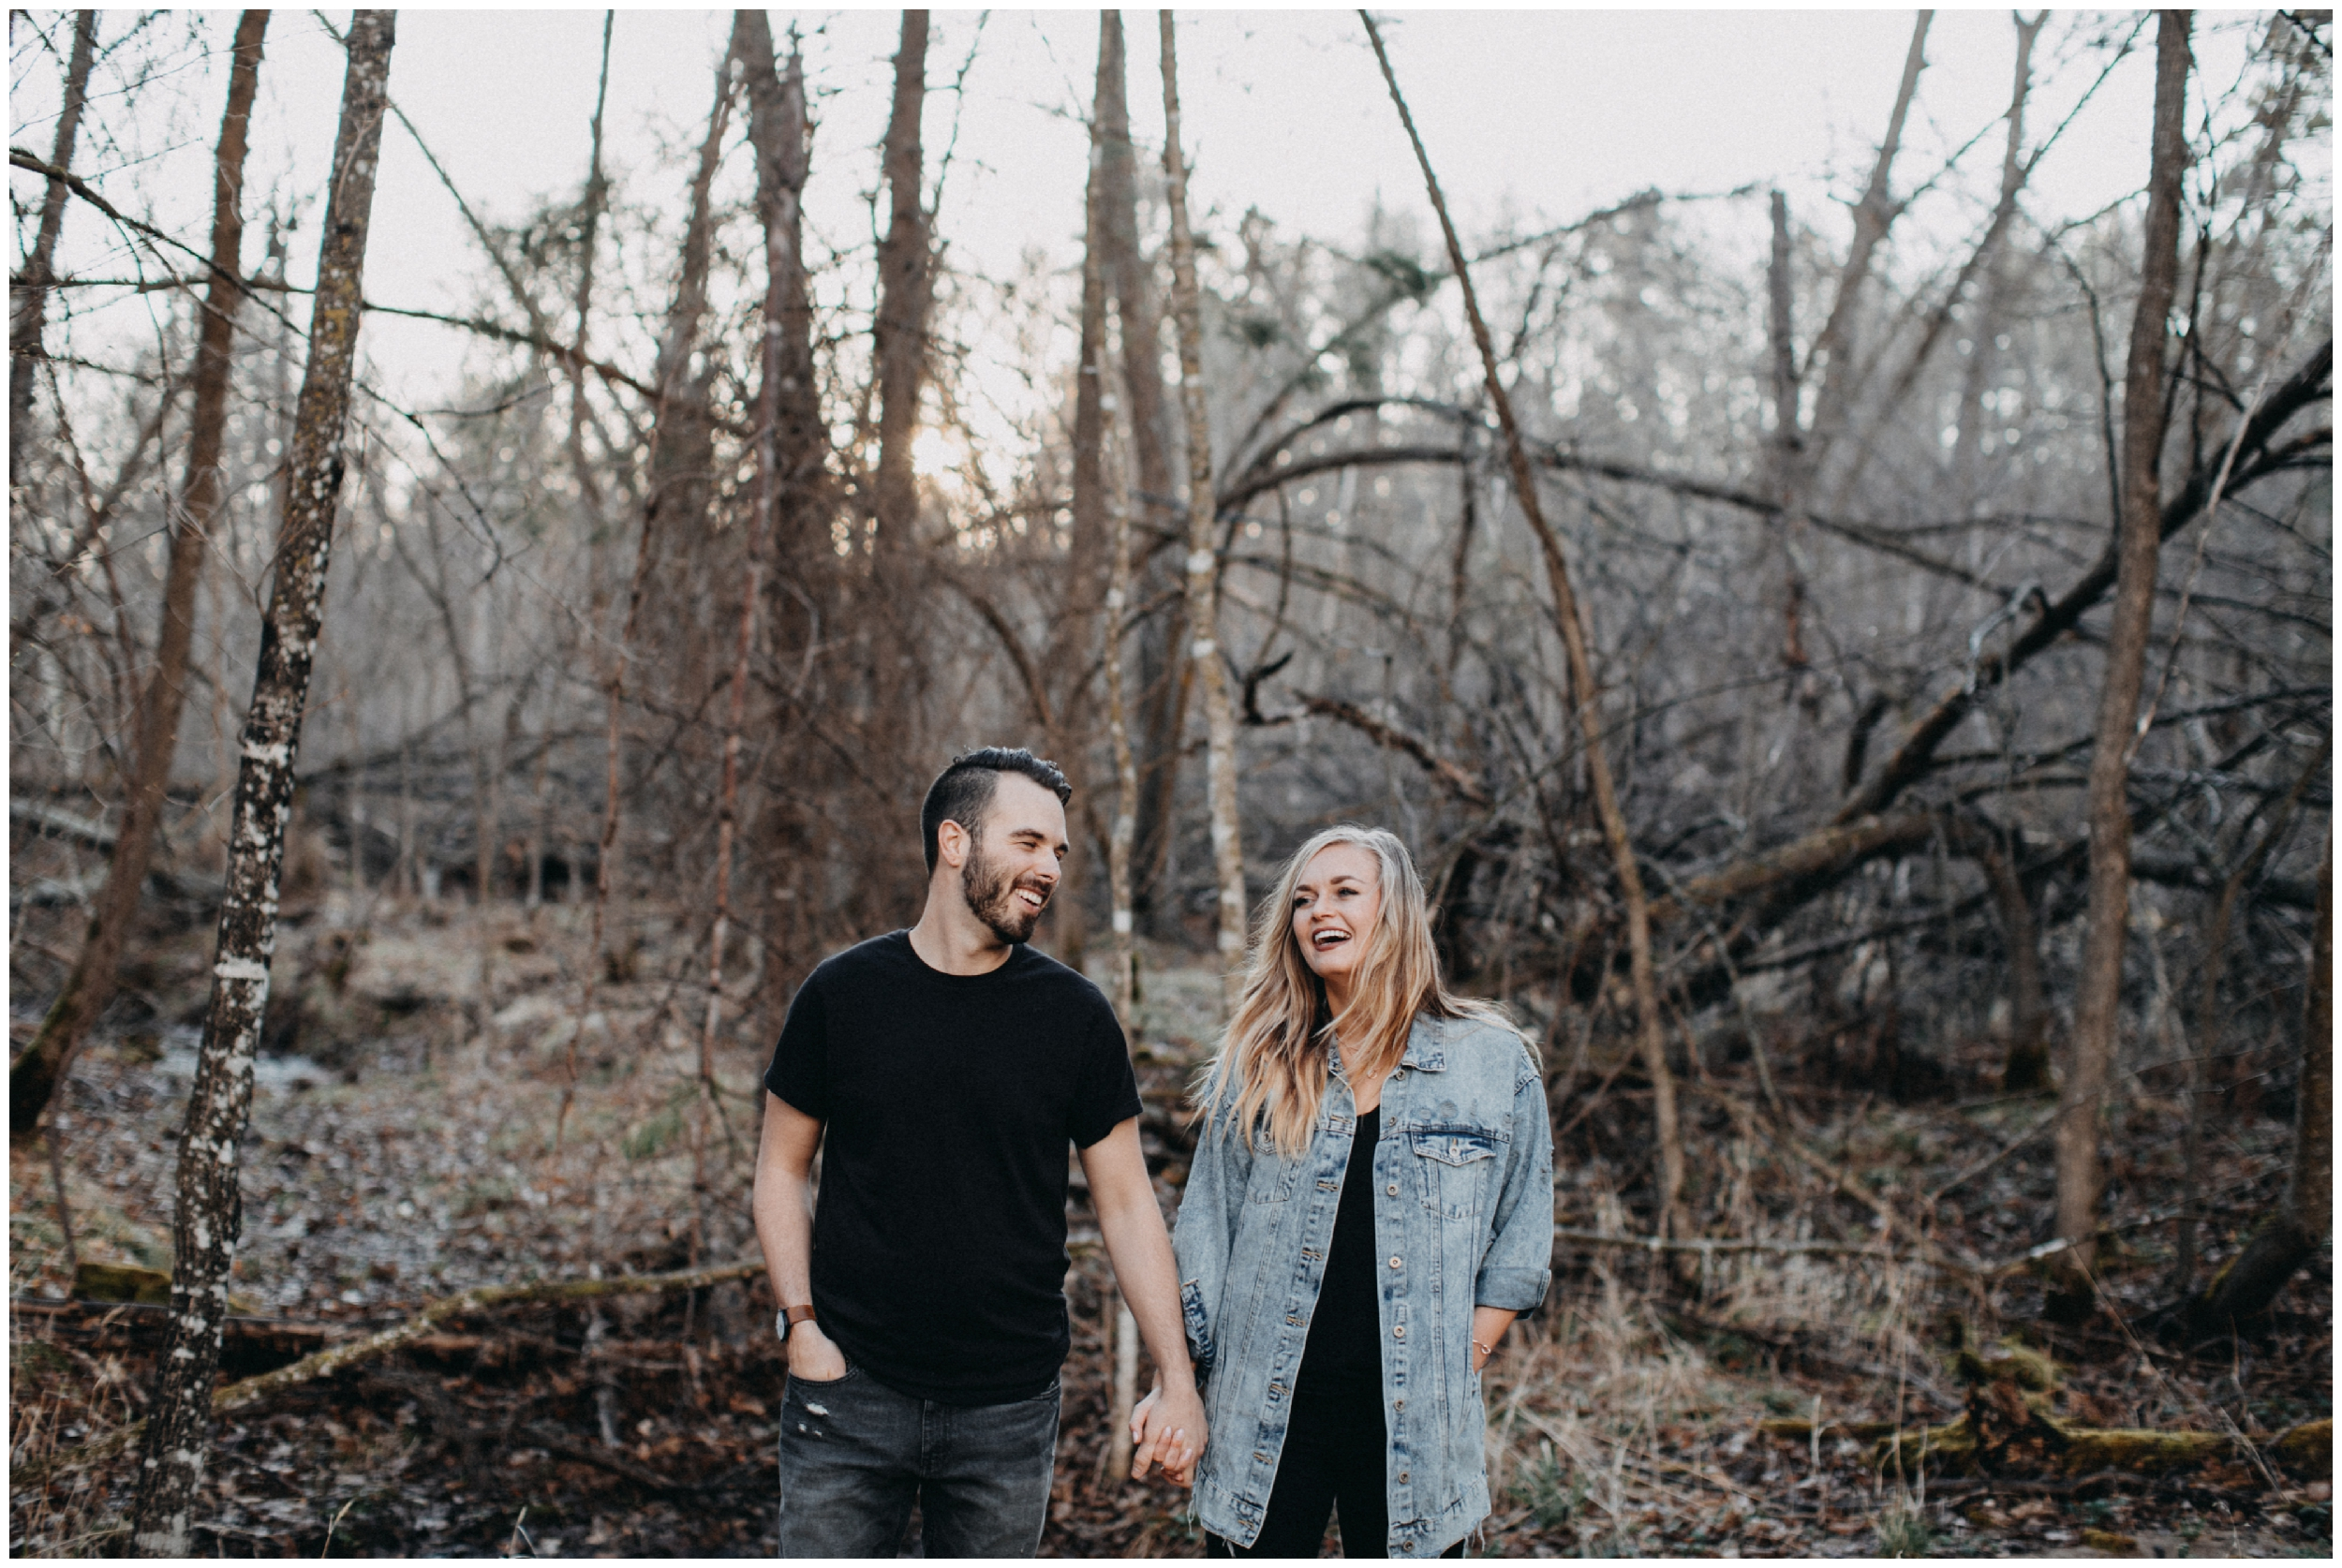 Untraditional engagement photography in Brainerd Minnesota